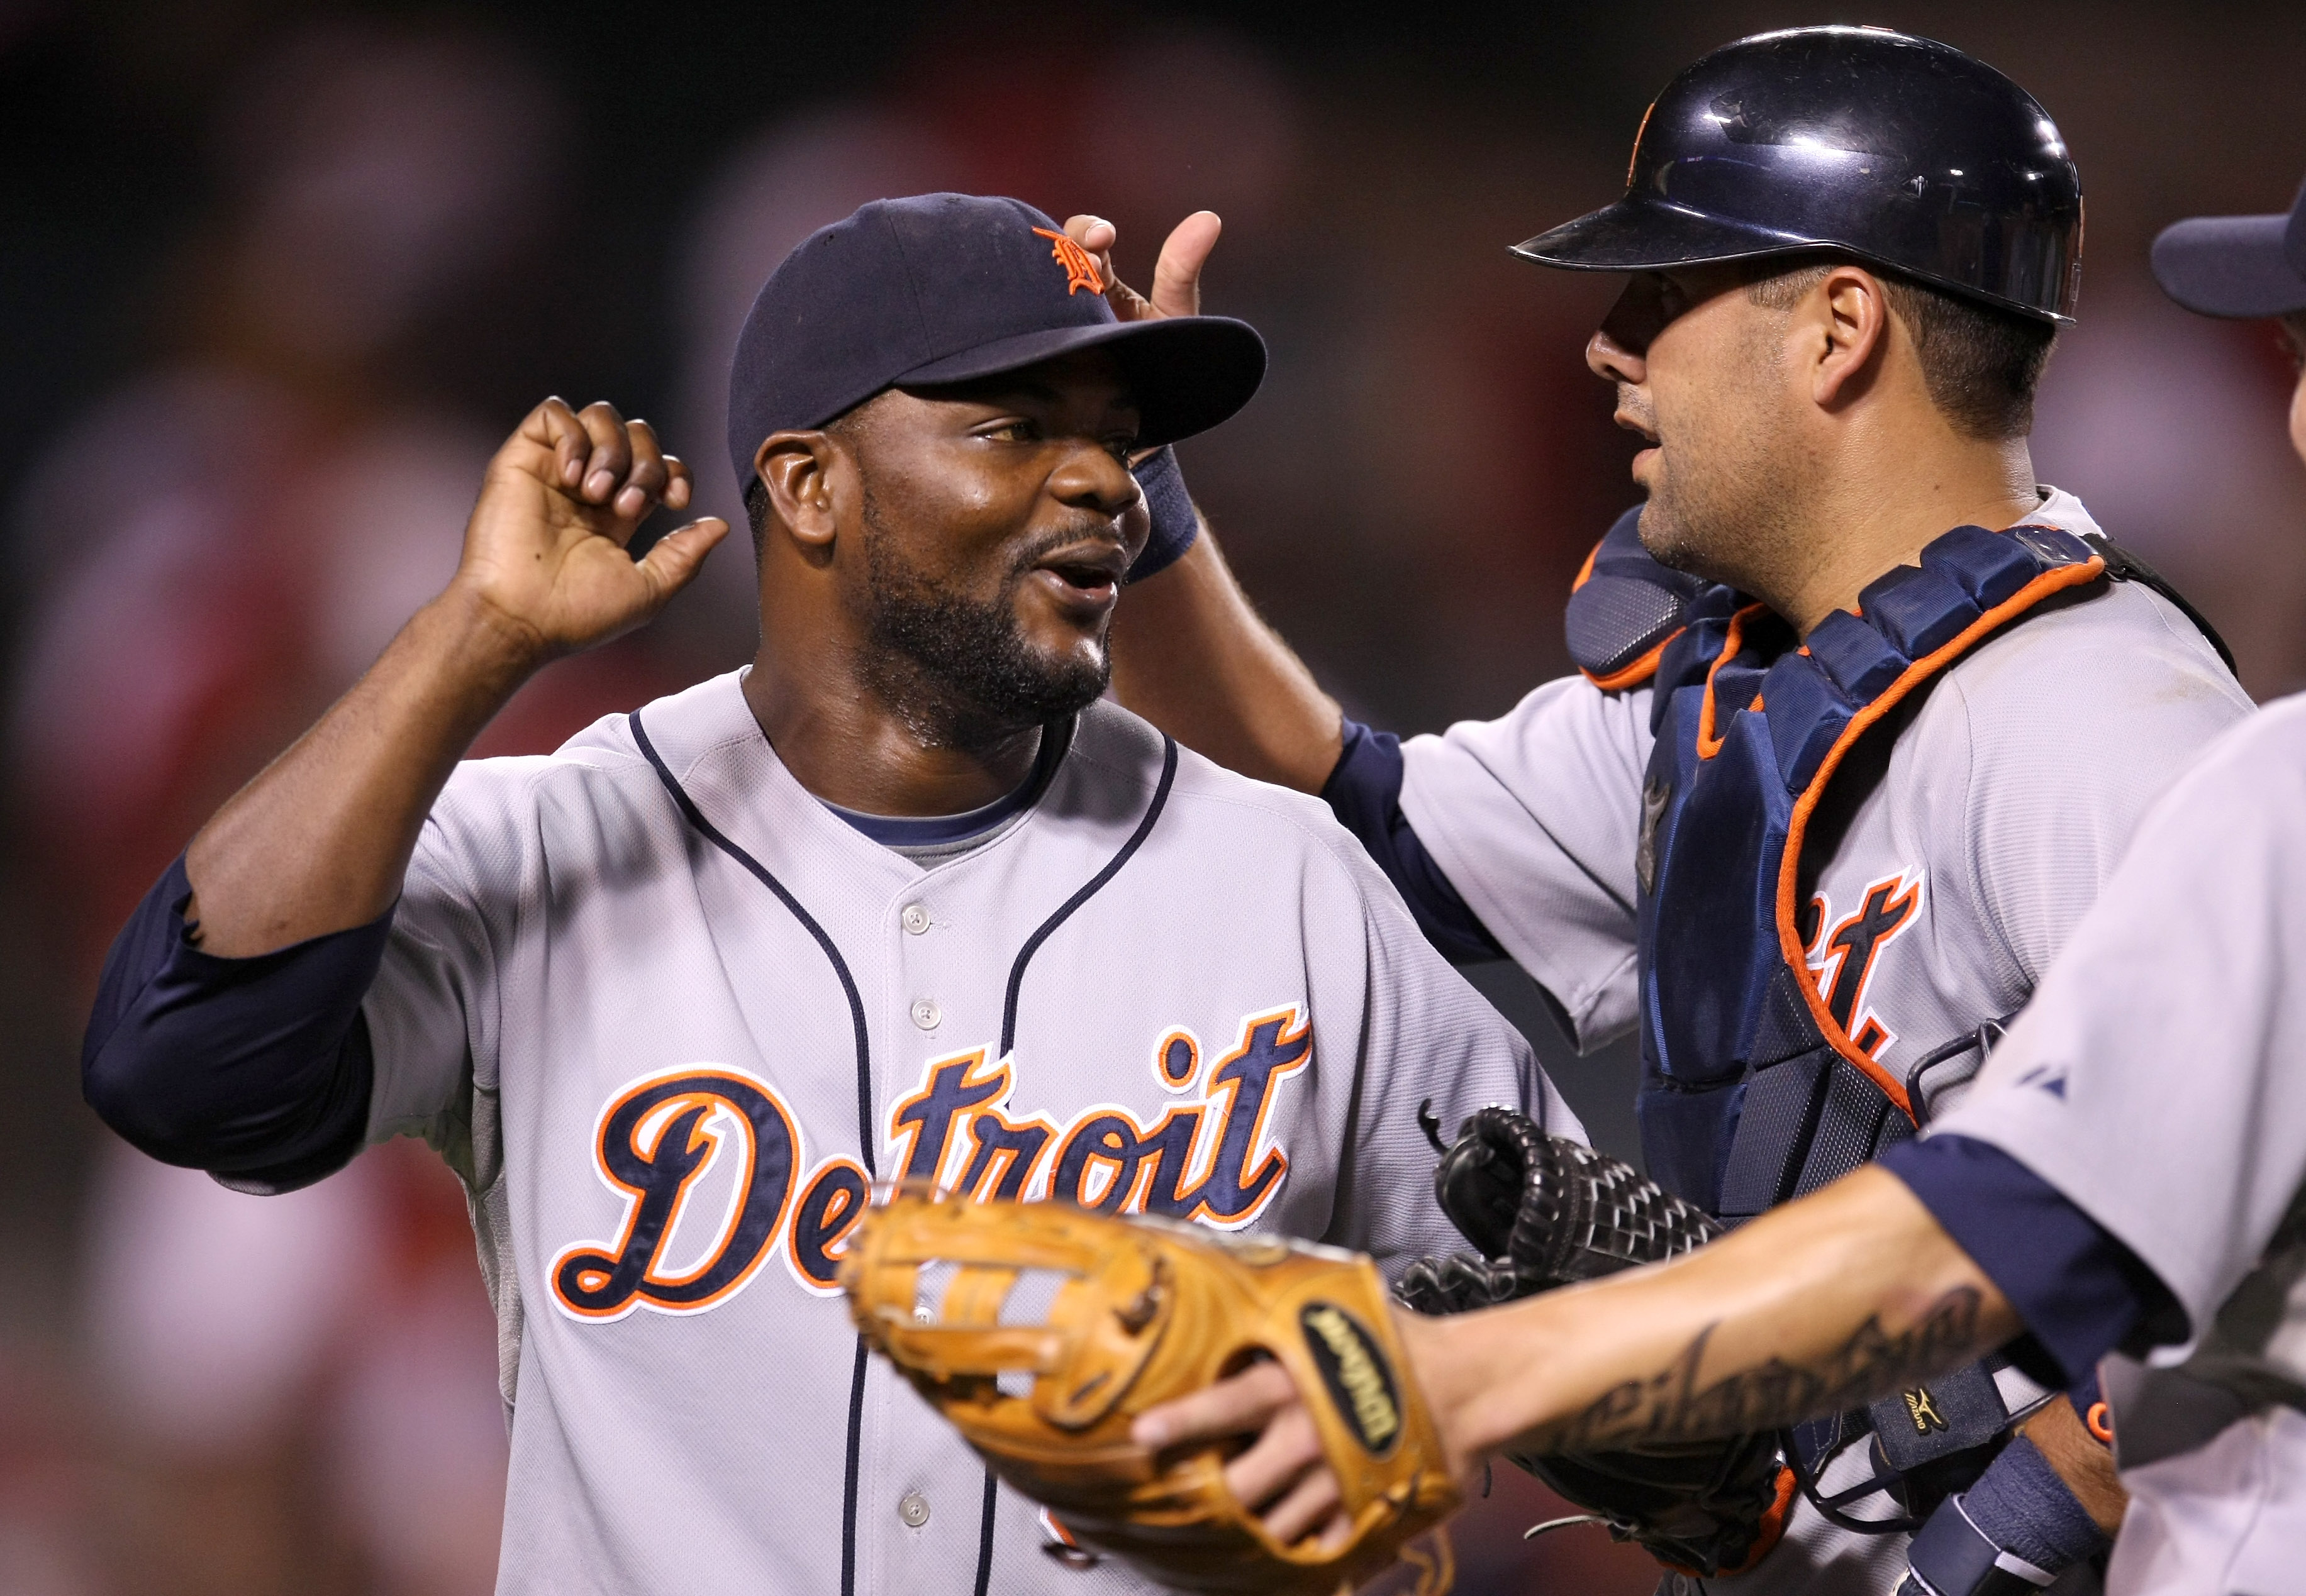 ANAHEIM, CA - AUGUST 24:  Closer Fernanado Rodney #56 and catcher Gerald Laird #8 of the Detroit Tigers celebrate after the game against the Los Angeles Angels of Anaheim on August 24, 2009 at Angel Stadium in Anaheim, California.  Rodney picked up his 27